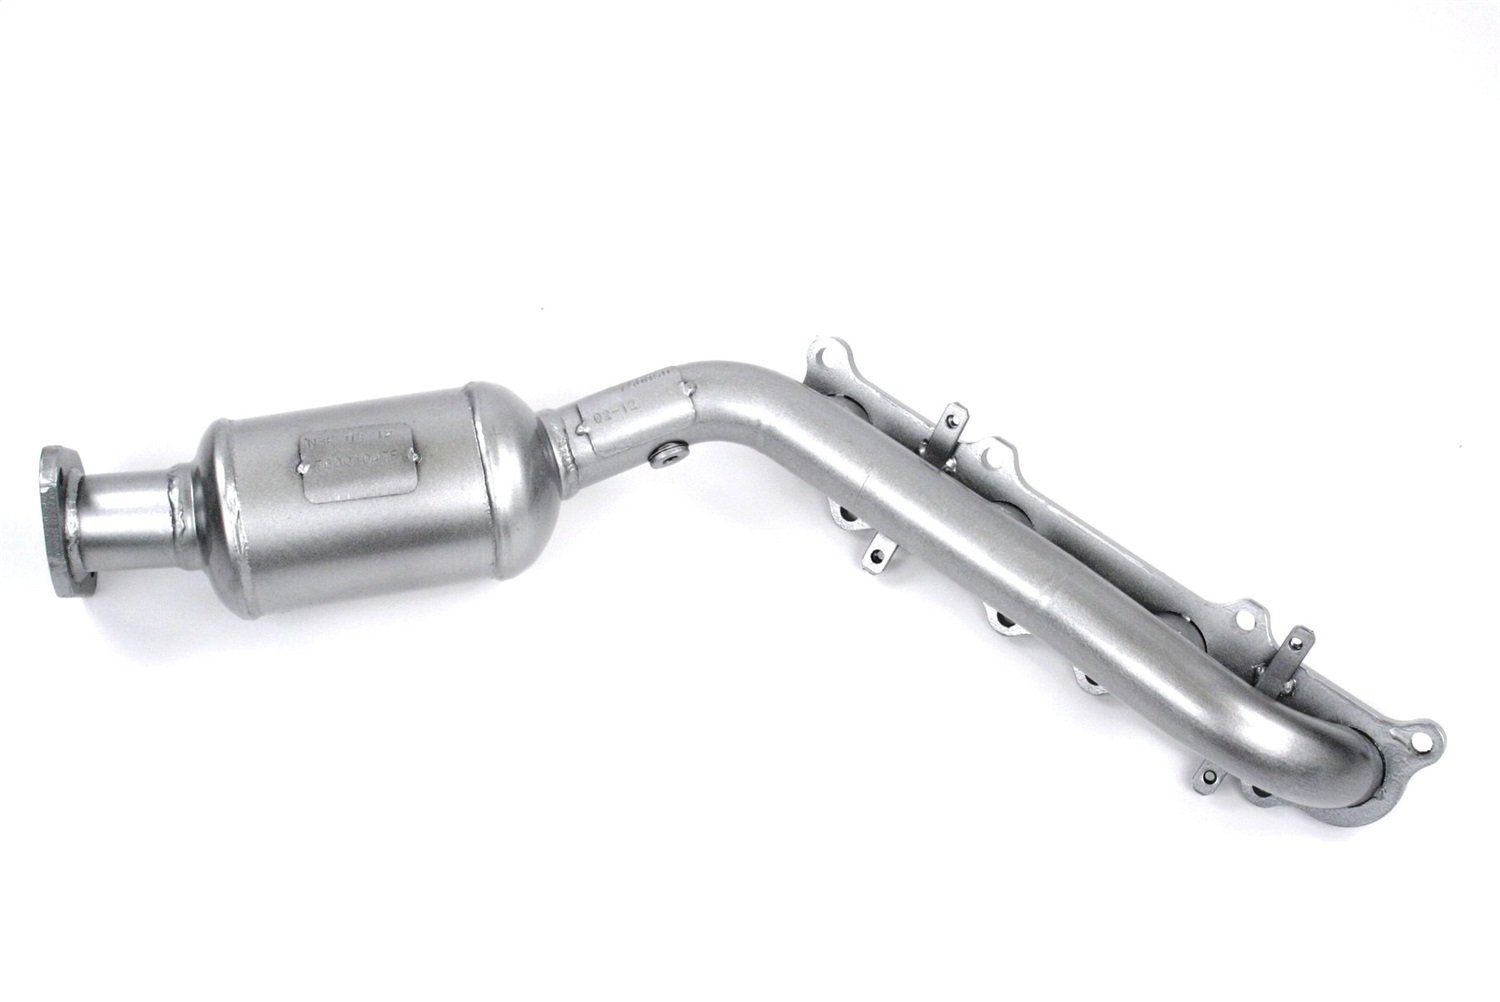 Pacesetter 750050 Direct-Fit Manifold with Catalytic Converter